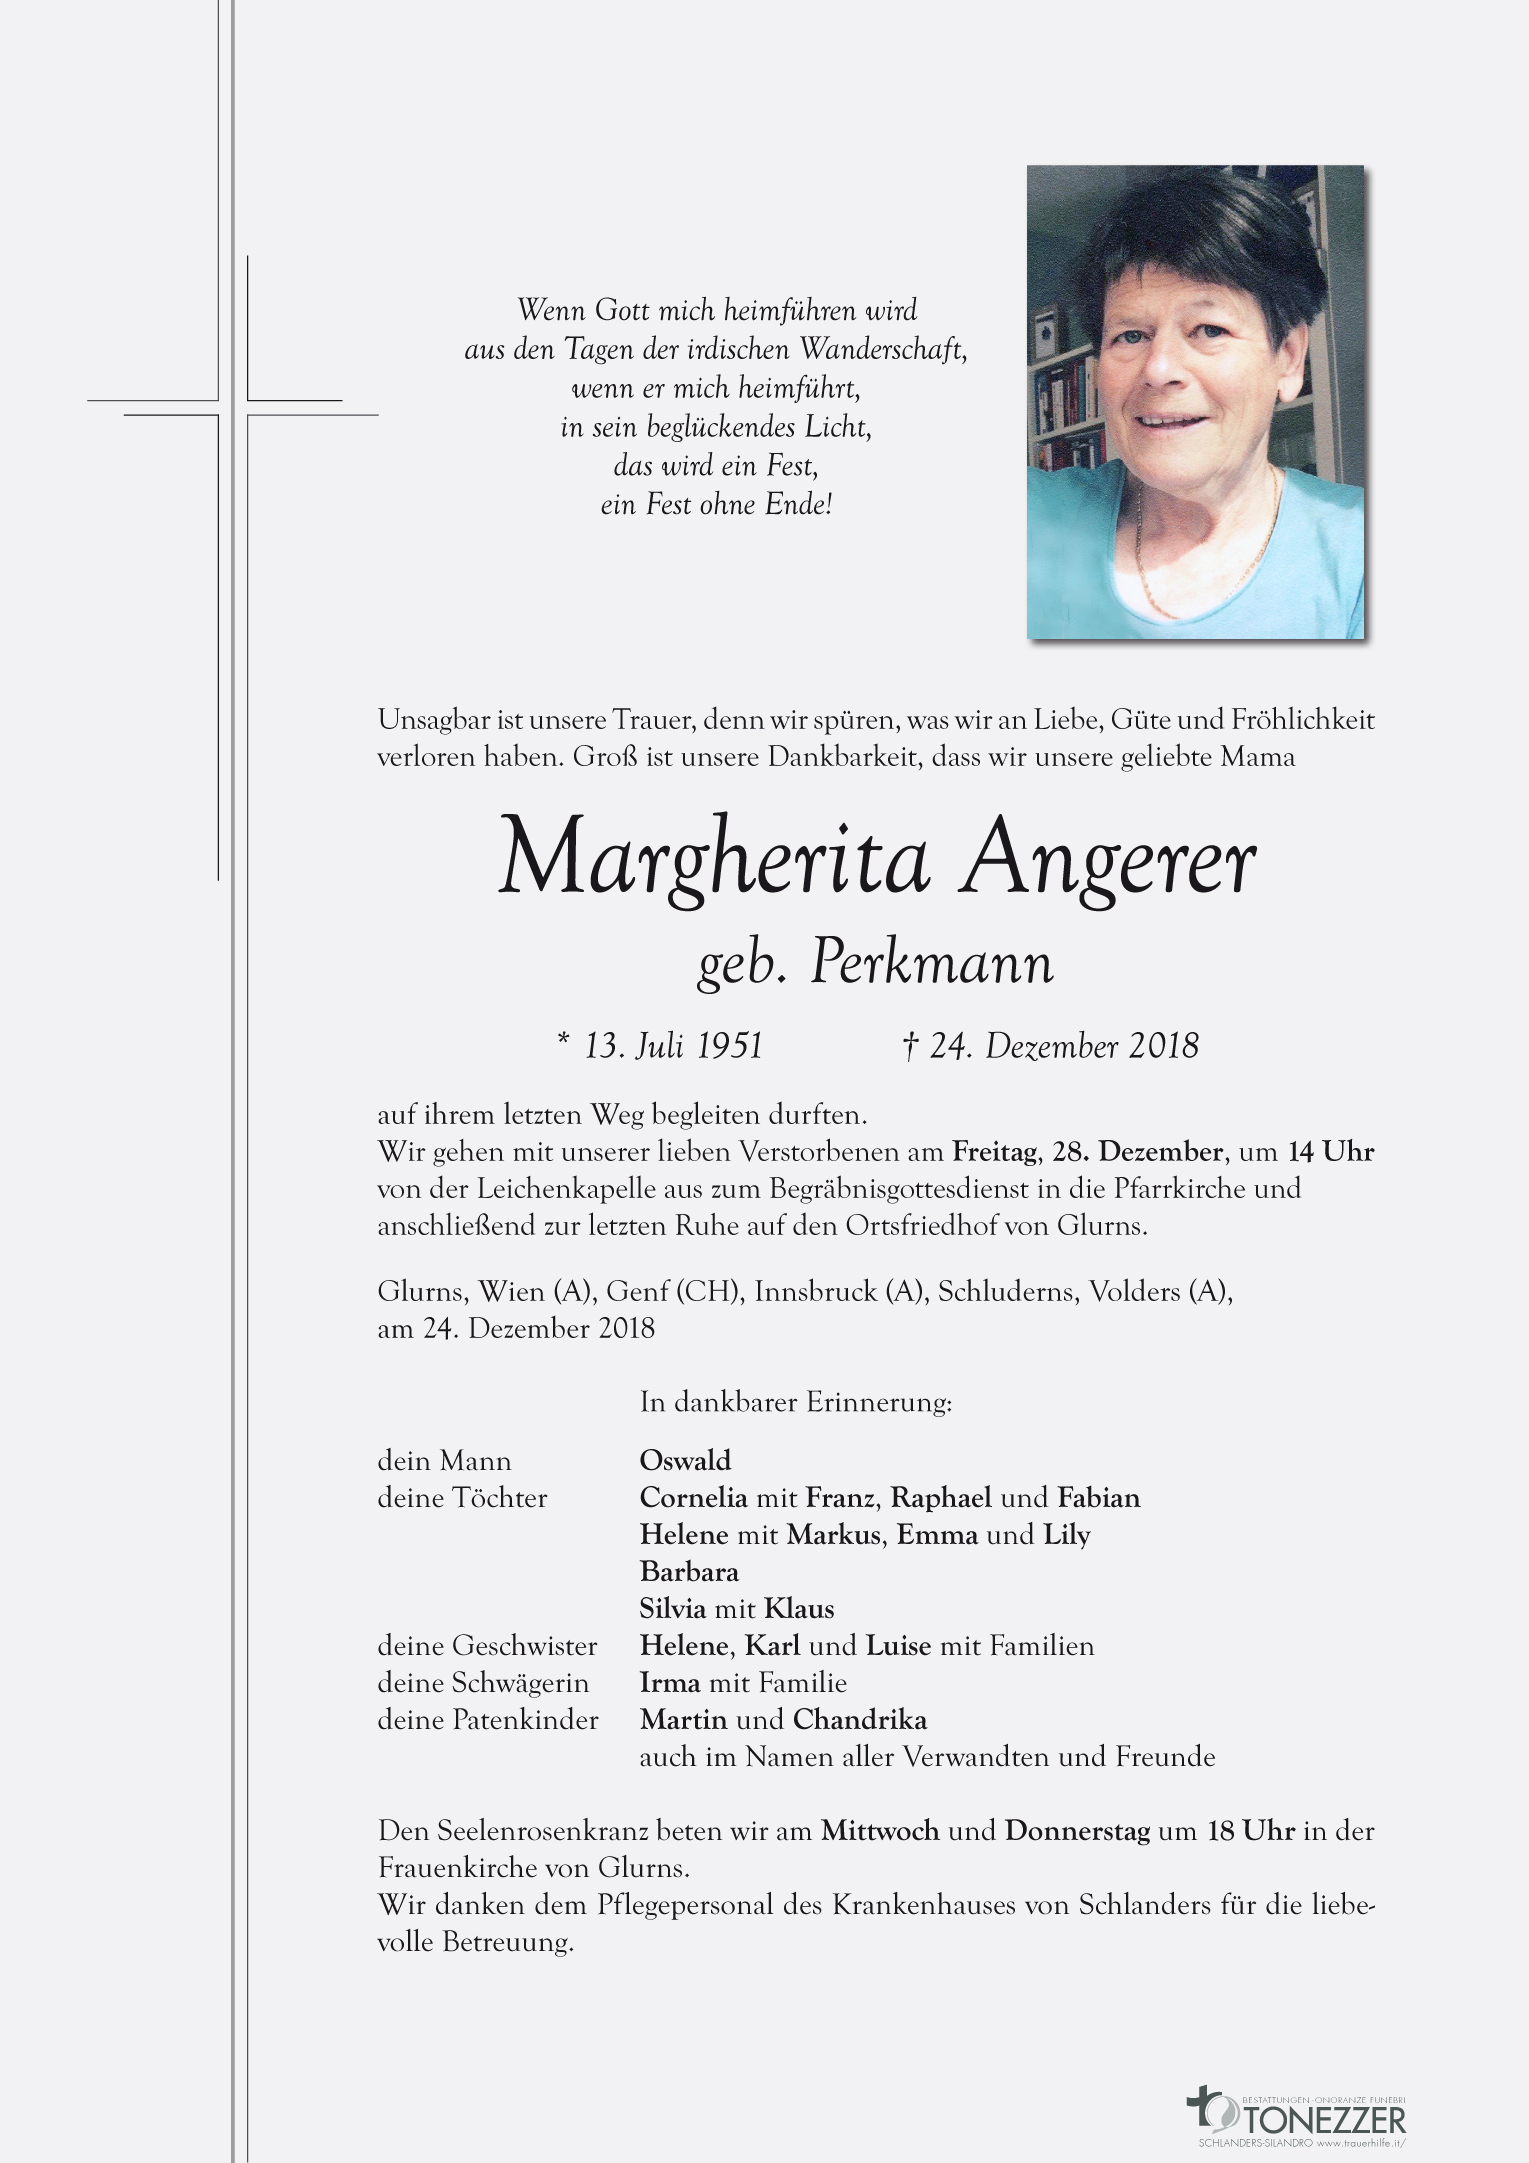 Margherita Angerer